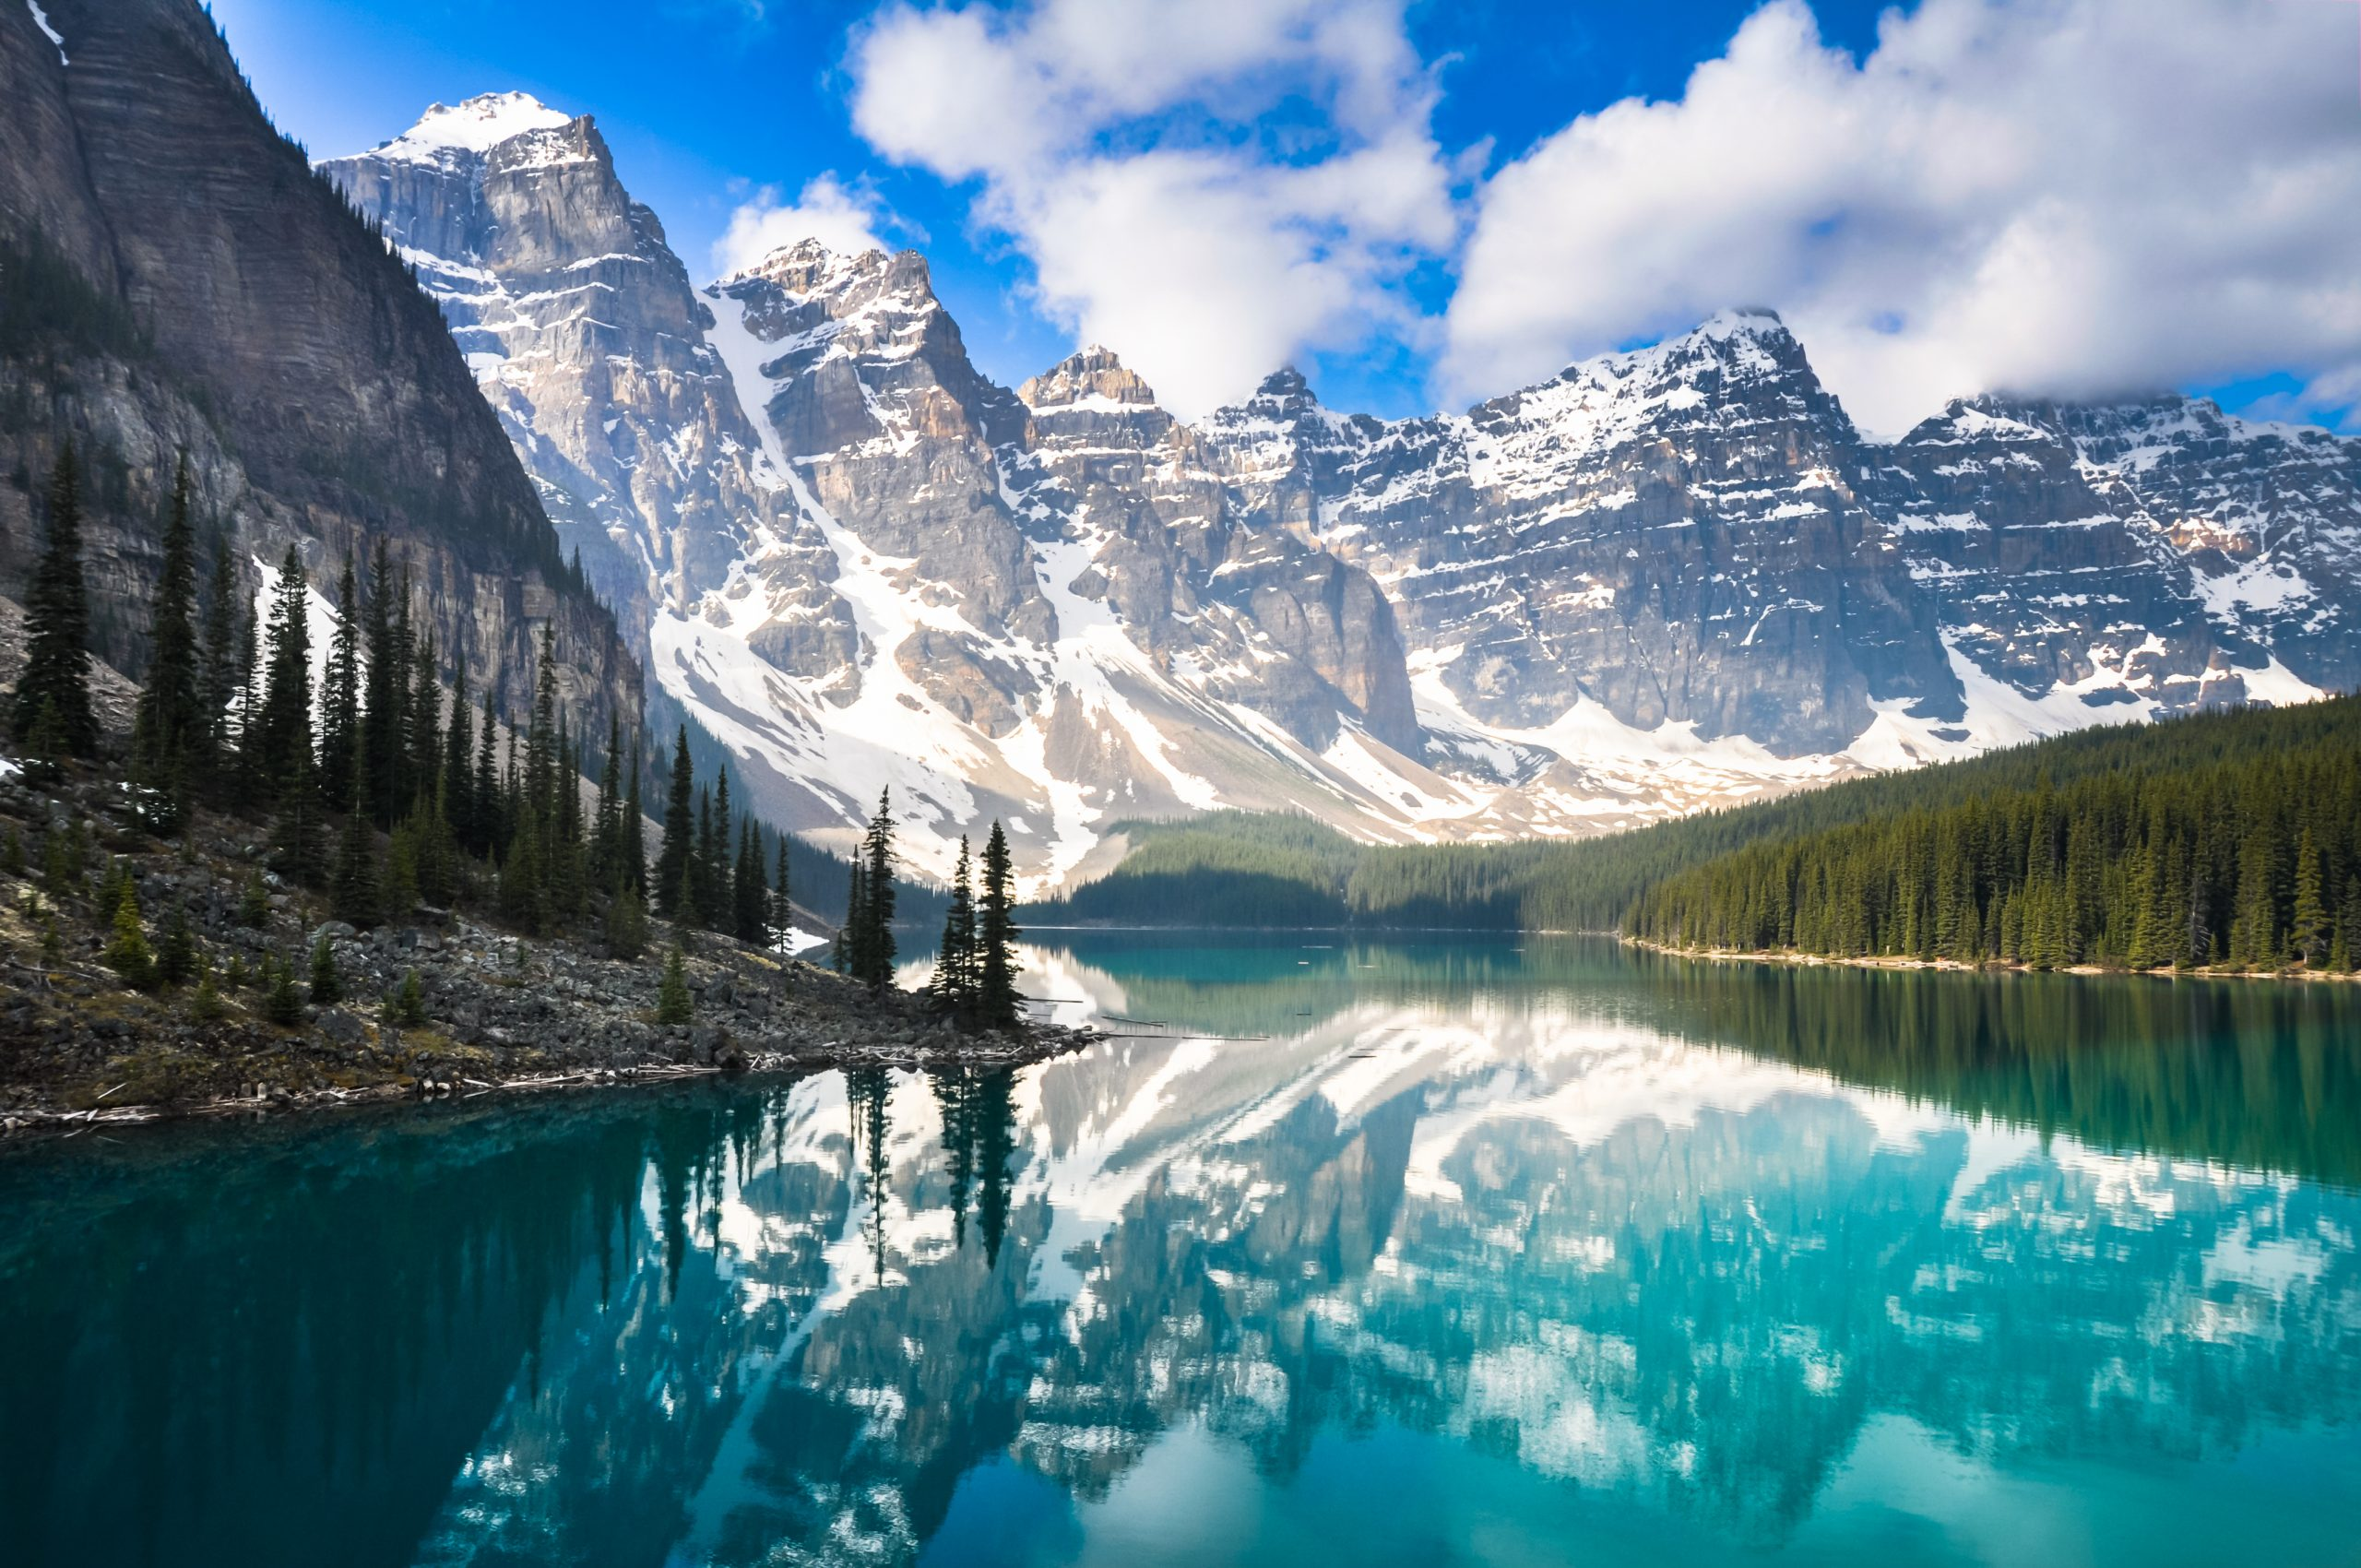 10-Day Glacier and Canadian Rocky National Parks Tour From Missoula or Kalispell ends Calgary